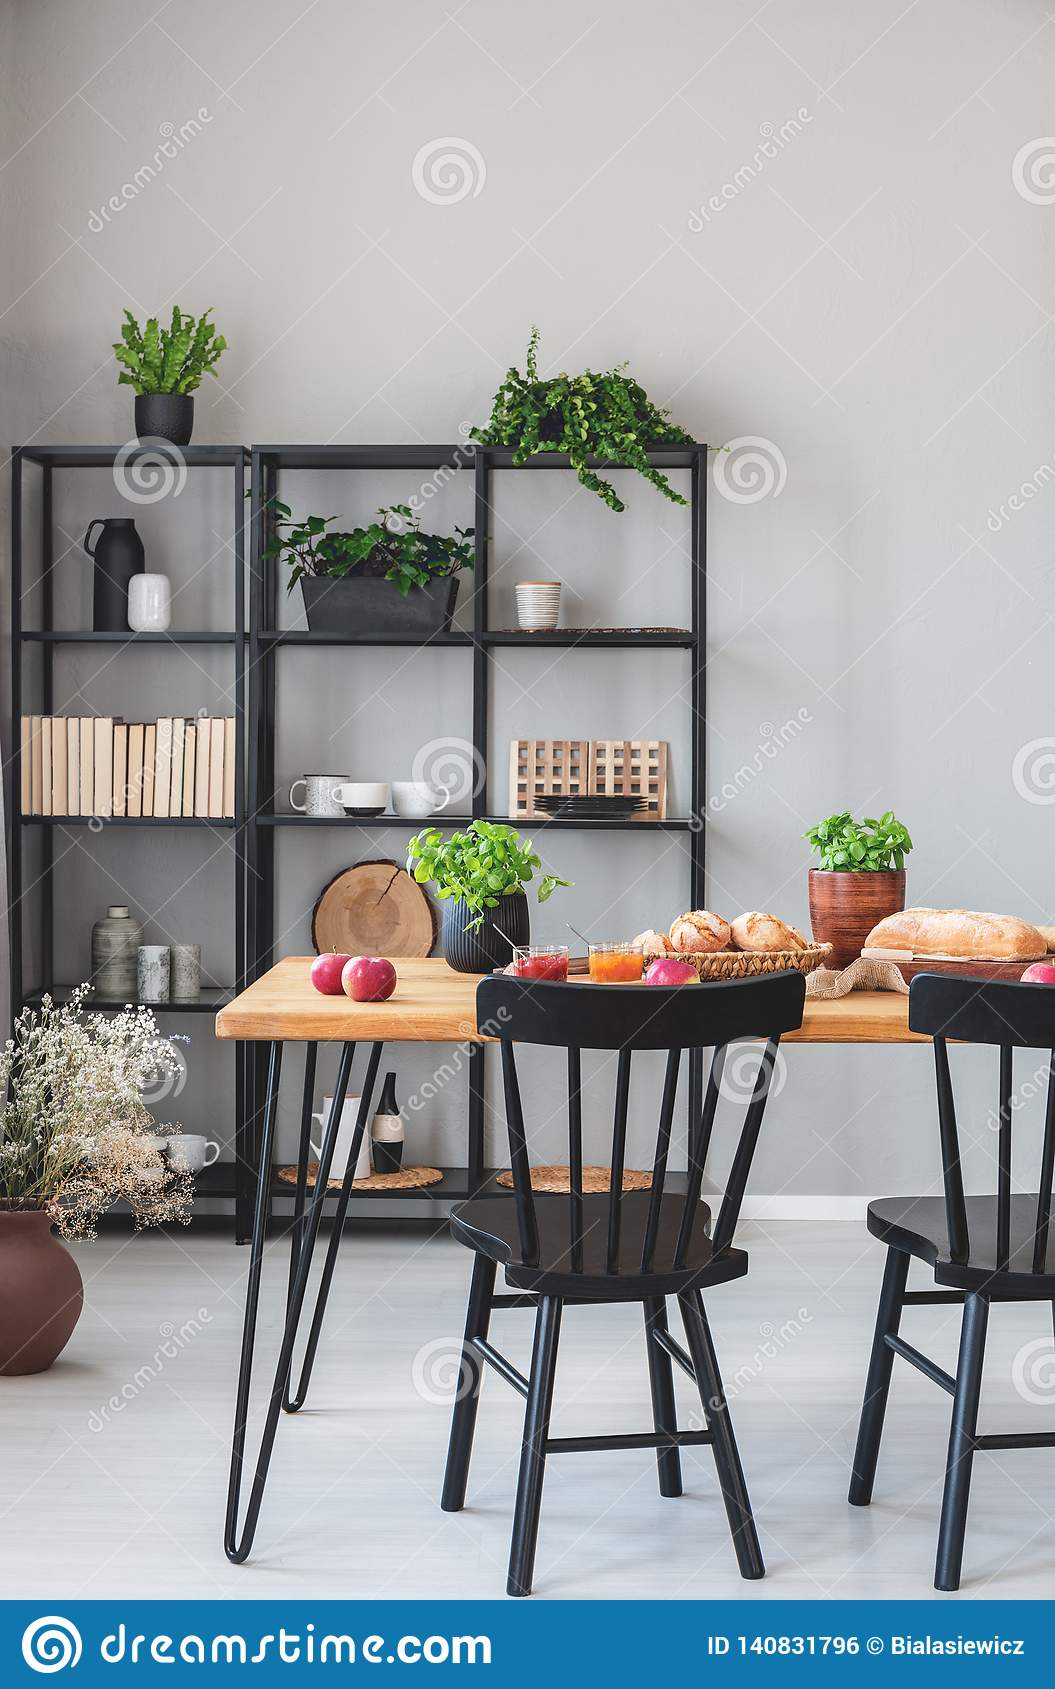 Real Photo Of A Grey Dining Room Interior With Metal Shelves ...